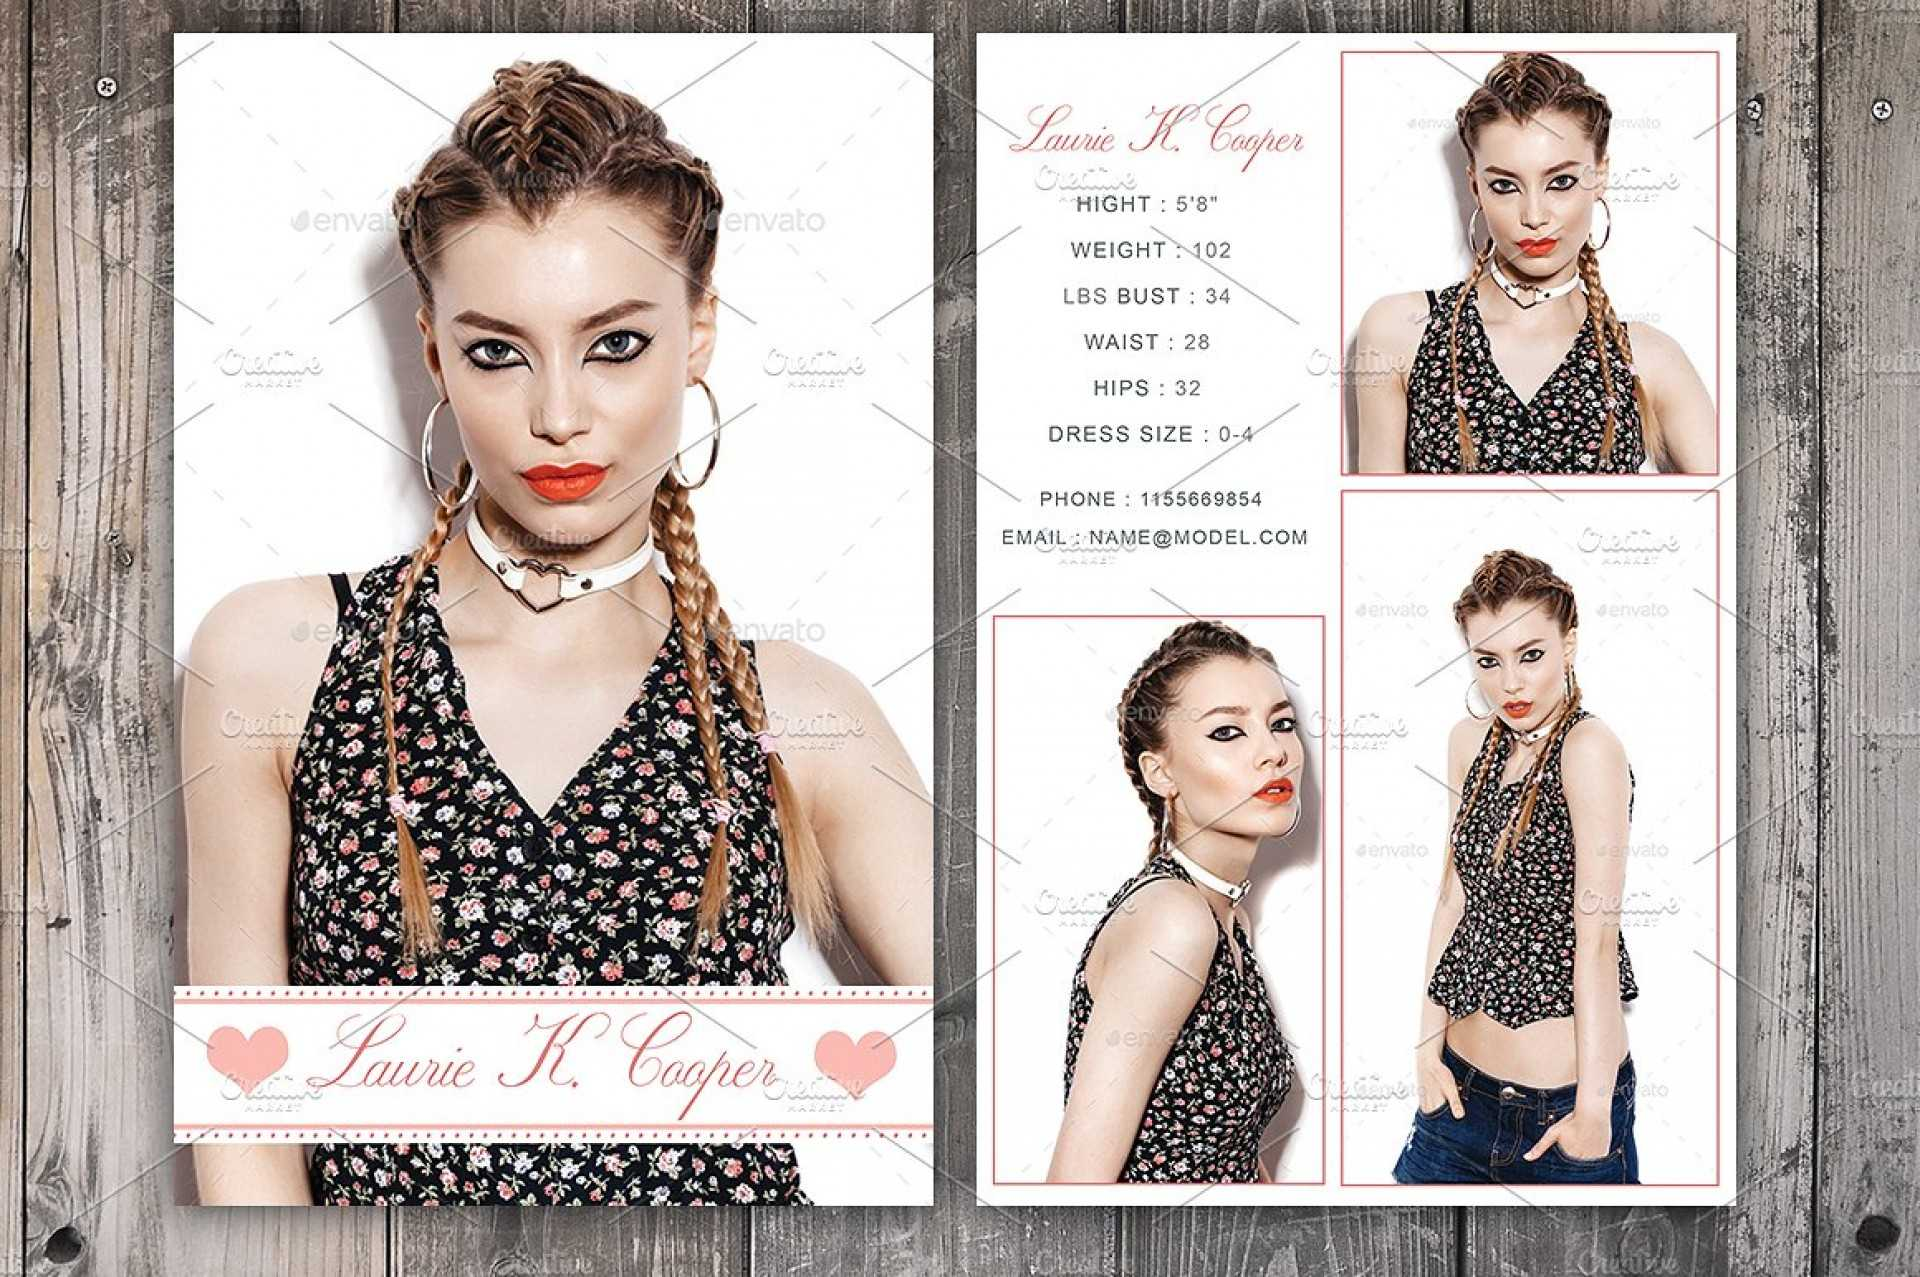 Free Model Comp Card Templates - C Punkt In Free Comp Card Template